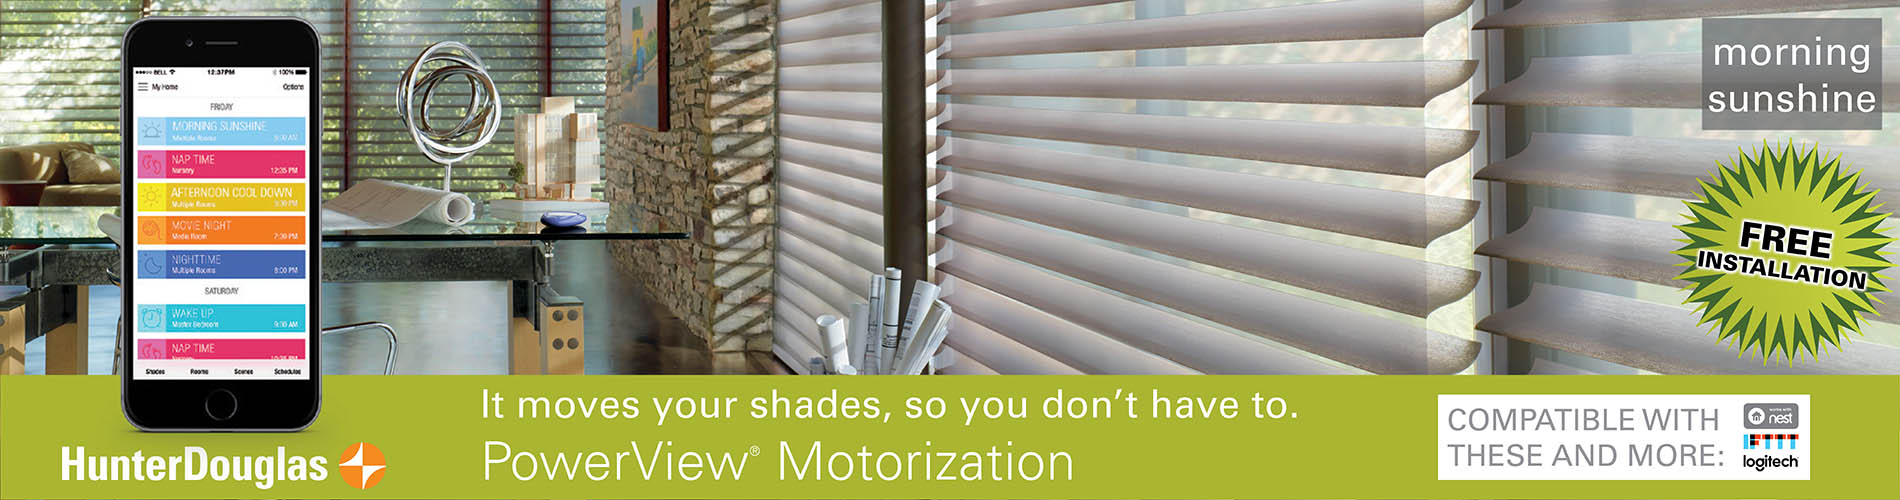 Hunter Douglas PowerView® Motorization  MOVES YOUR SHADES, SO YOU DON'T HAVE TO!